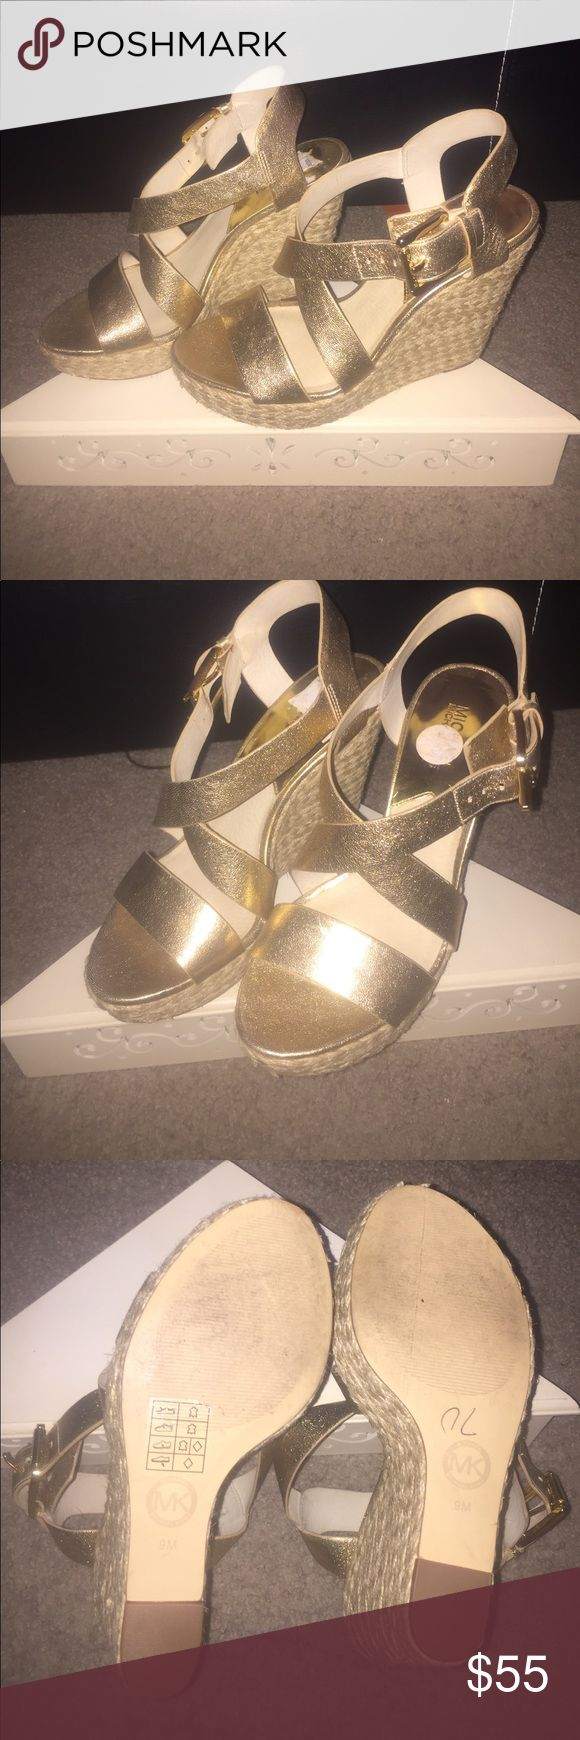 Gold Michael Kors wedge sandals Gold strappy sandals with woven straw heel. Only wore once to a wedding. Sandals are like new. Inside of the sandals have some sticker residue from price tag and can be removed. I removed as much as I could but it is not noticeable when wearing. MICHAEL Michael Kors Shoes Sandals